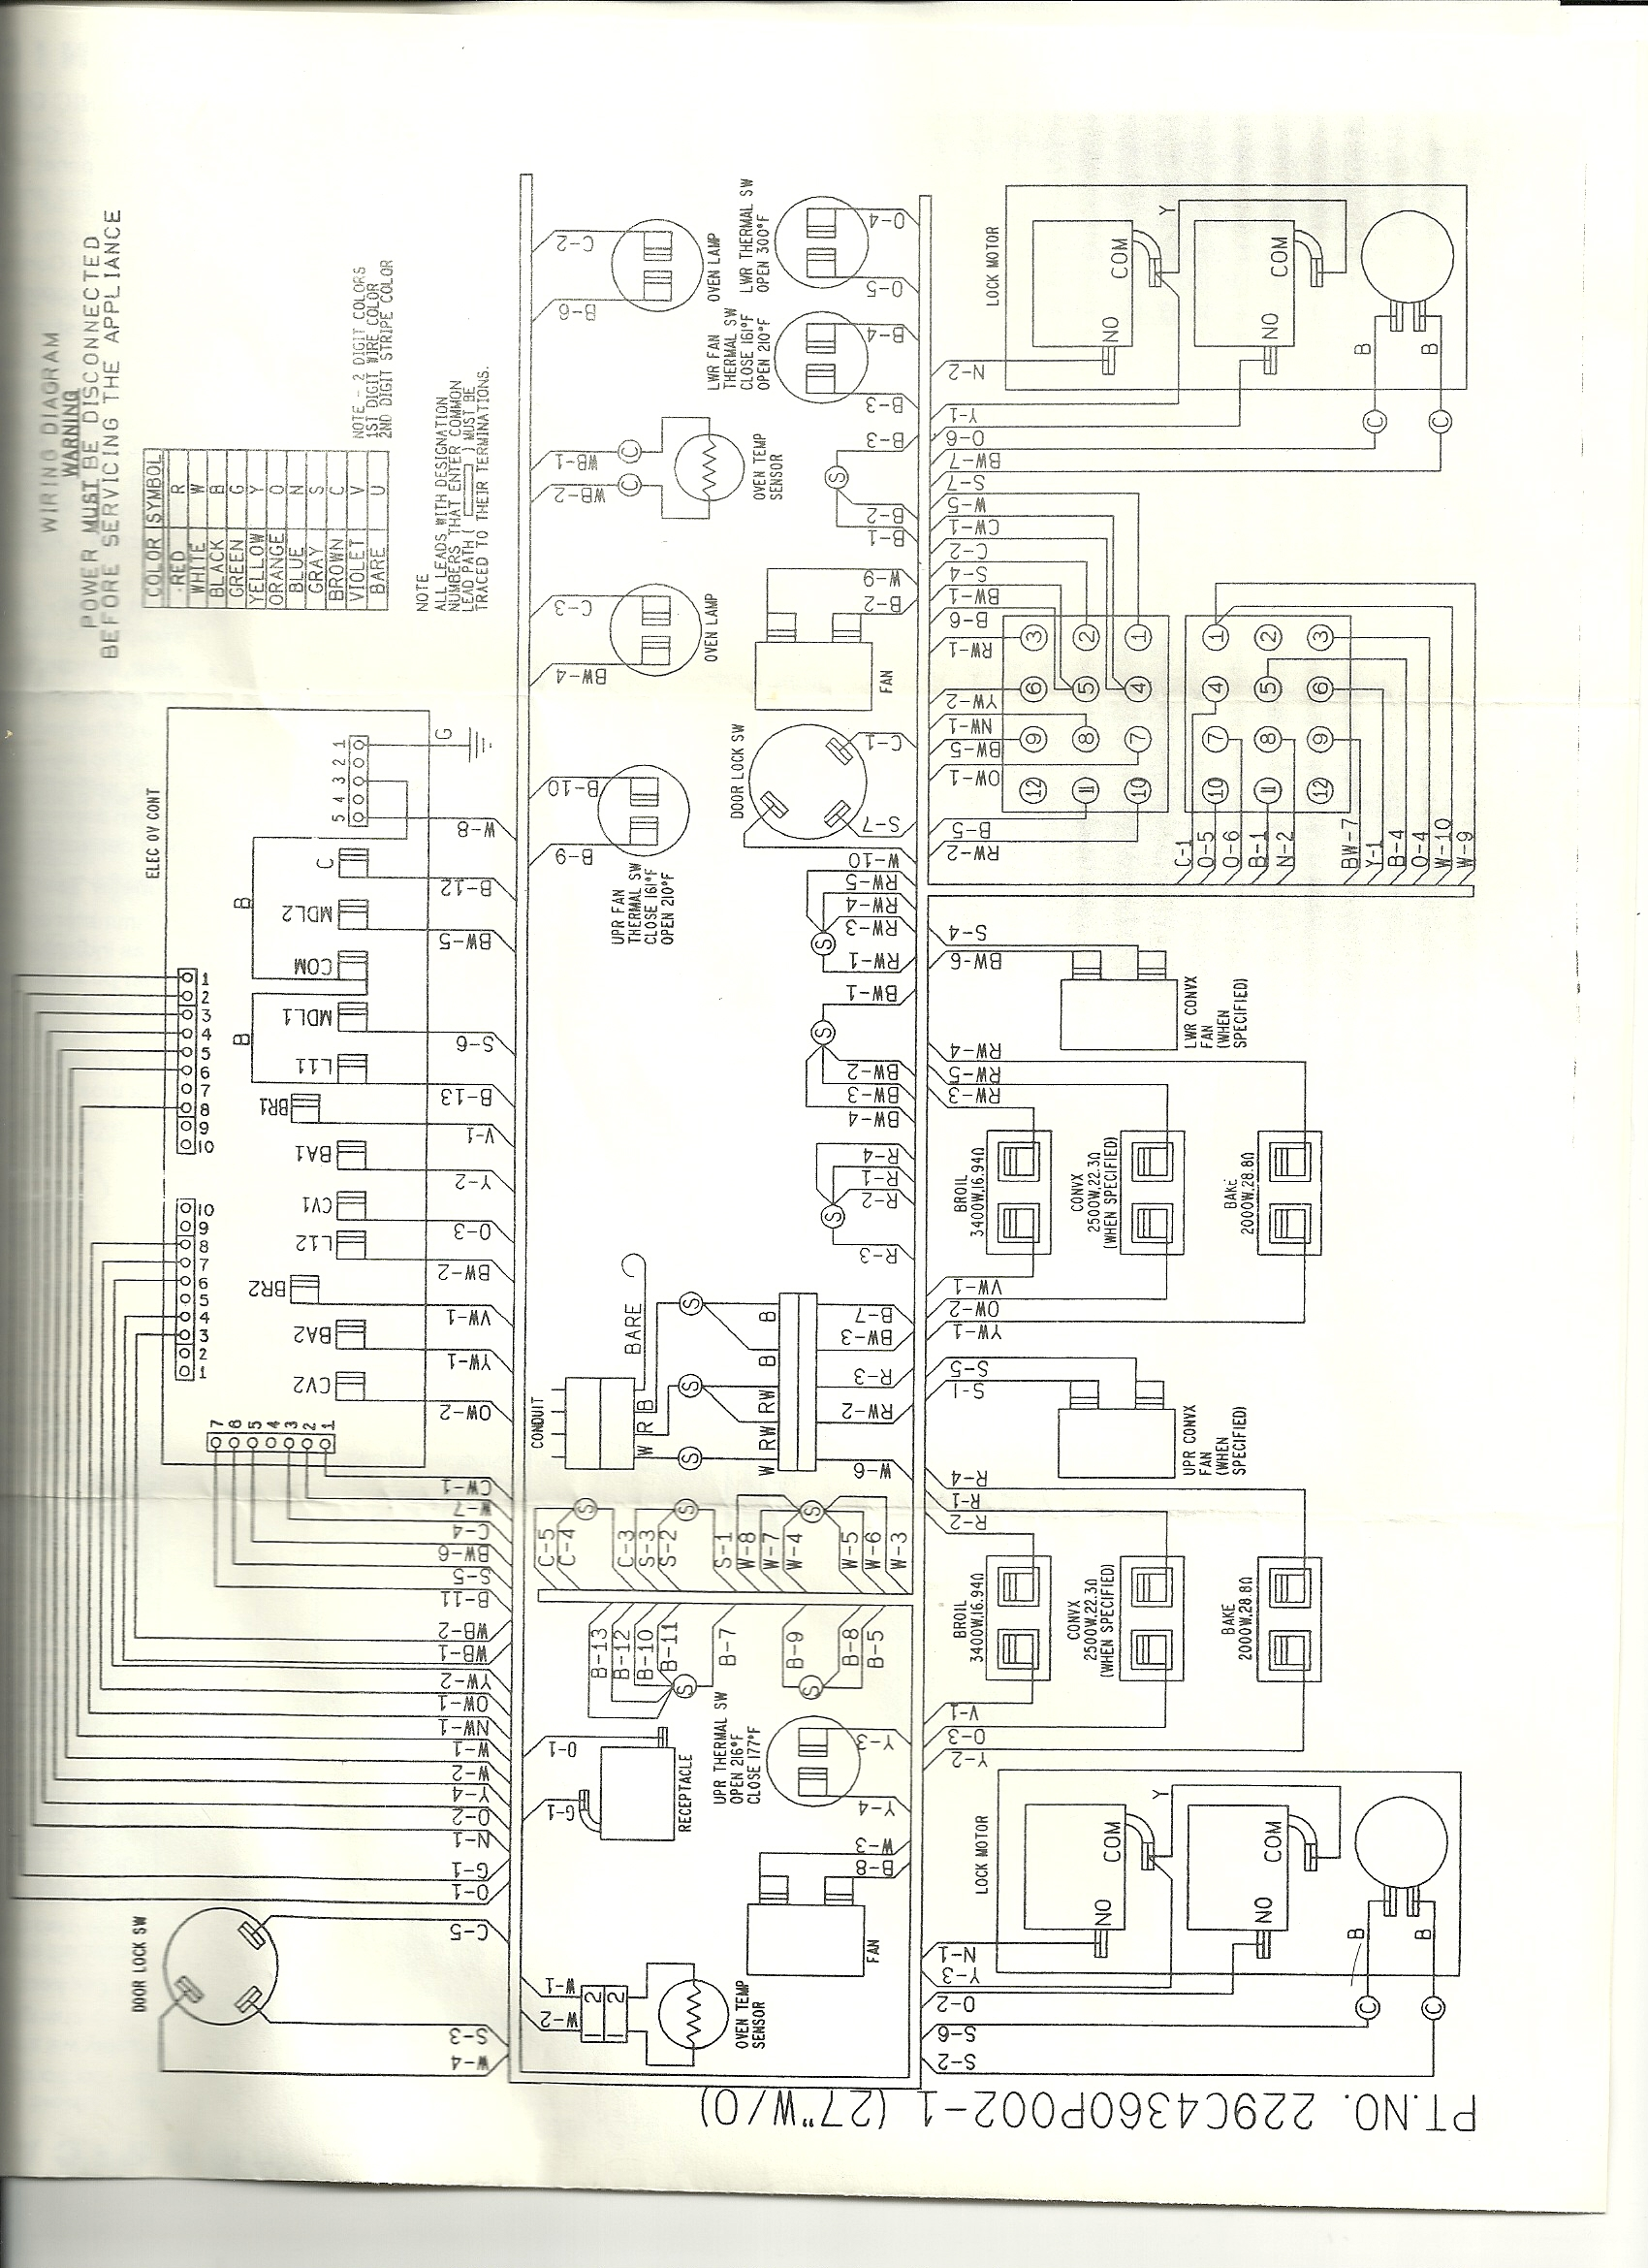 2012 09 13_005224_circuitdiagram_ge_range0001 ge monogram oven wiring diagram on ge download wirning diagrams GE Range Hood Jvx3240 Wiring-Diagram at alyssarenee.co